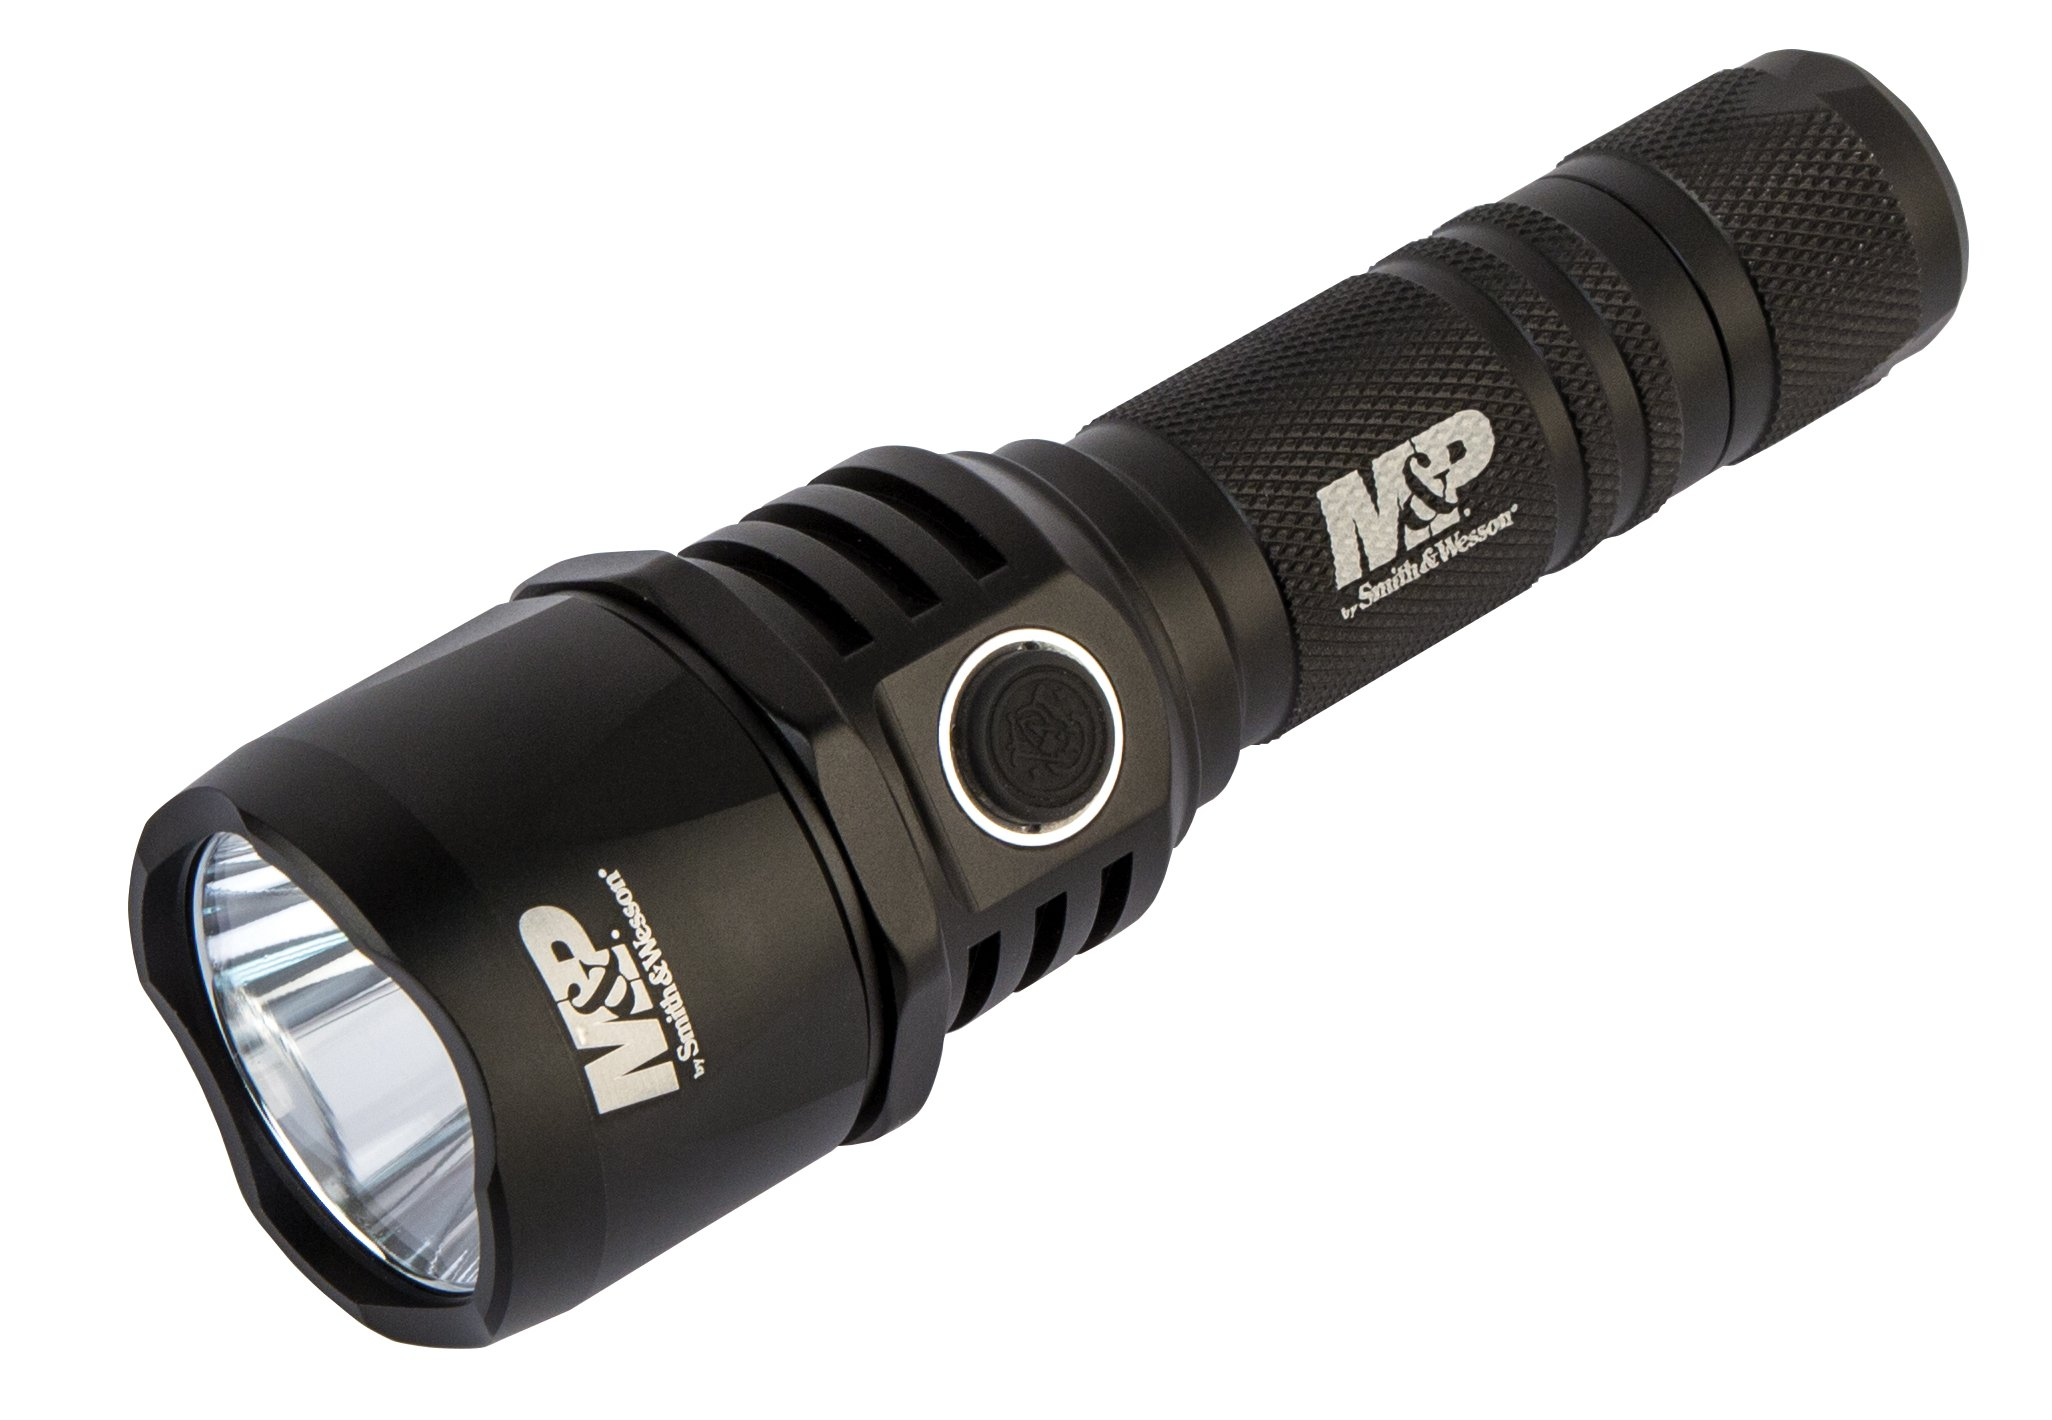 Smith & Wesson M&P by Duty Series MS, RXP LED Rechargeable Flashlight 1045 Lumens 1x8650 Impact & Water Resistant with Battery Bank to Charge Cellphones 1074566 by Smith & Wesson